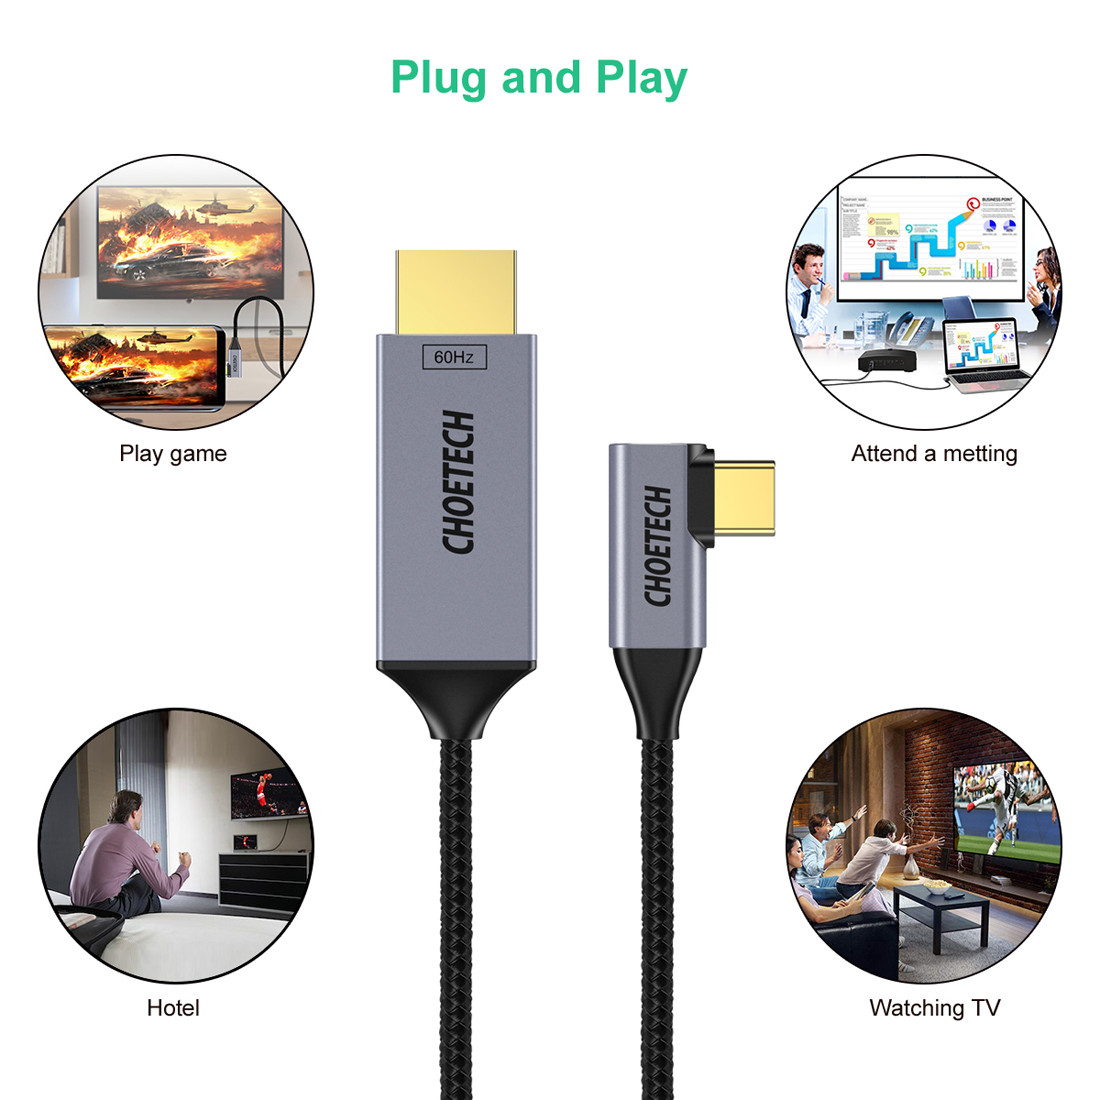 USB 3.1 4K@60Hz with 18Gbps Sonero UCC010-010 USB-C to HDMI 2.0 Cable 1.0 m Black White White USB-C auf DisplayPort 1,0m Thunderboltandere USB-C Computer Old Mode